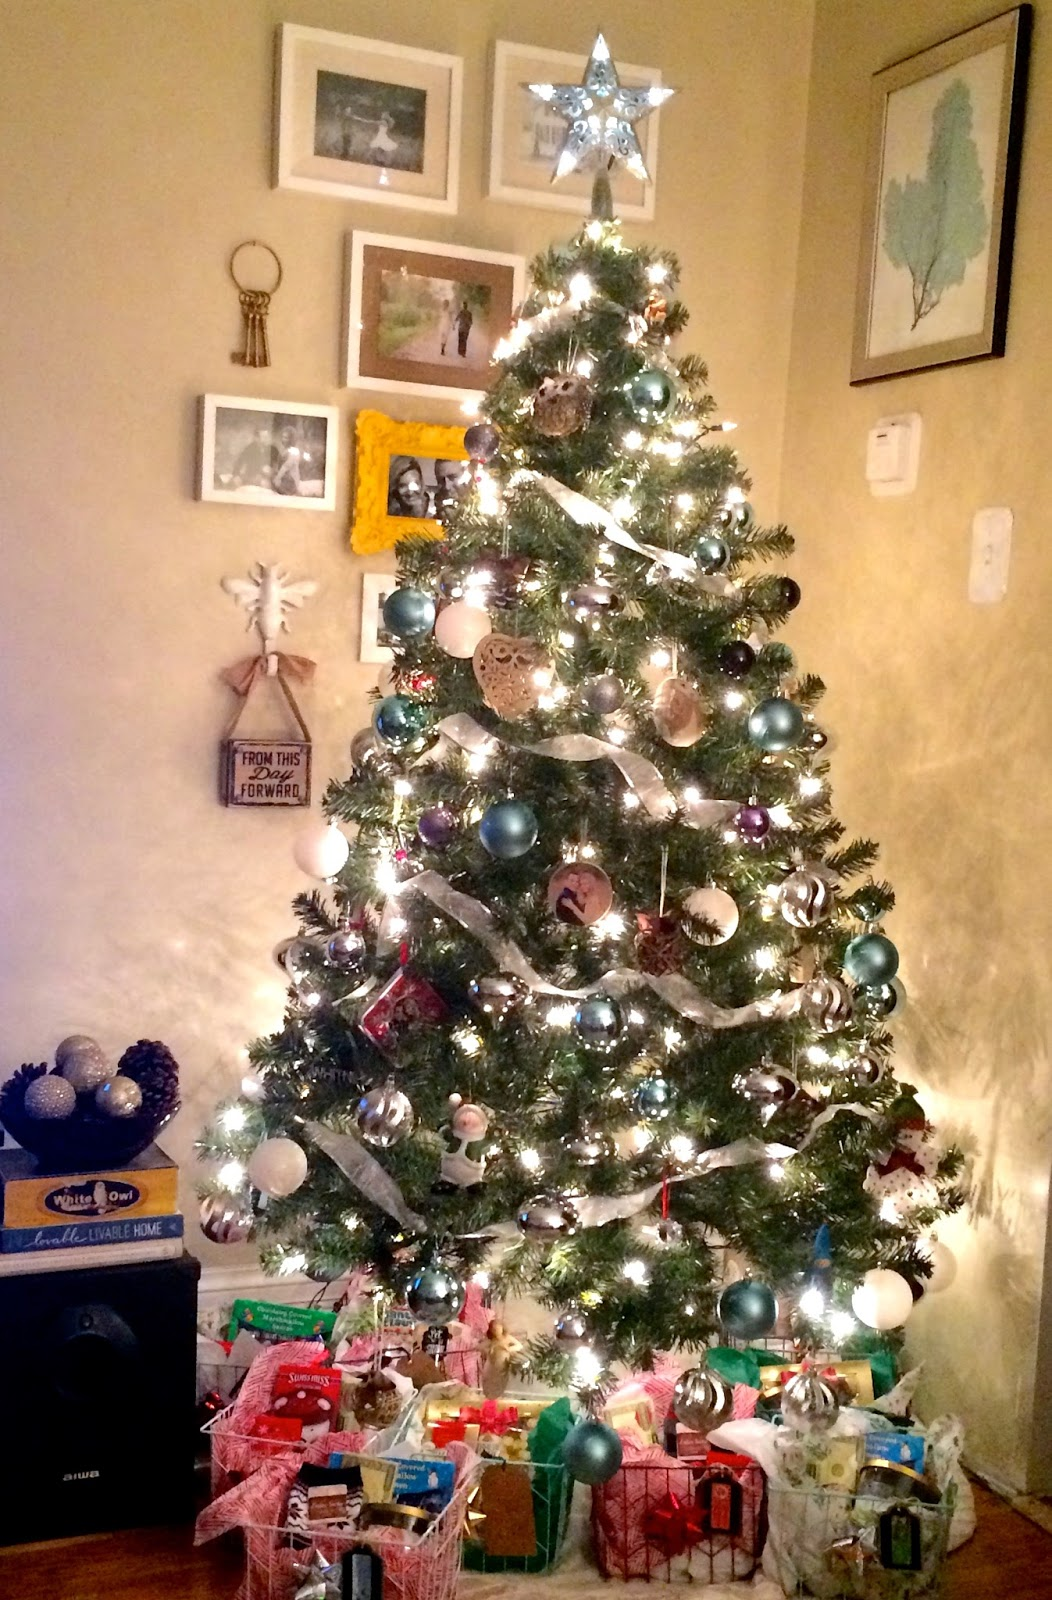 Why do we decorate our houses at christmas - I Always Try To Put The Tree Up Around Thanksgiving And That Was No Different This Year Decorating The Inside Of Our House Was The Easy Part For Me